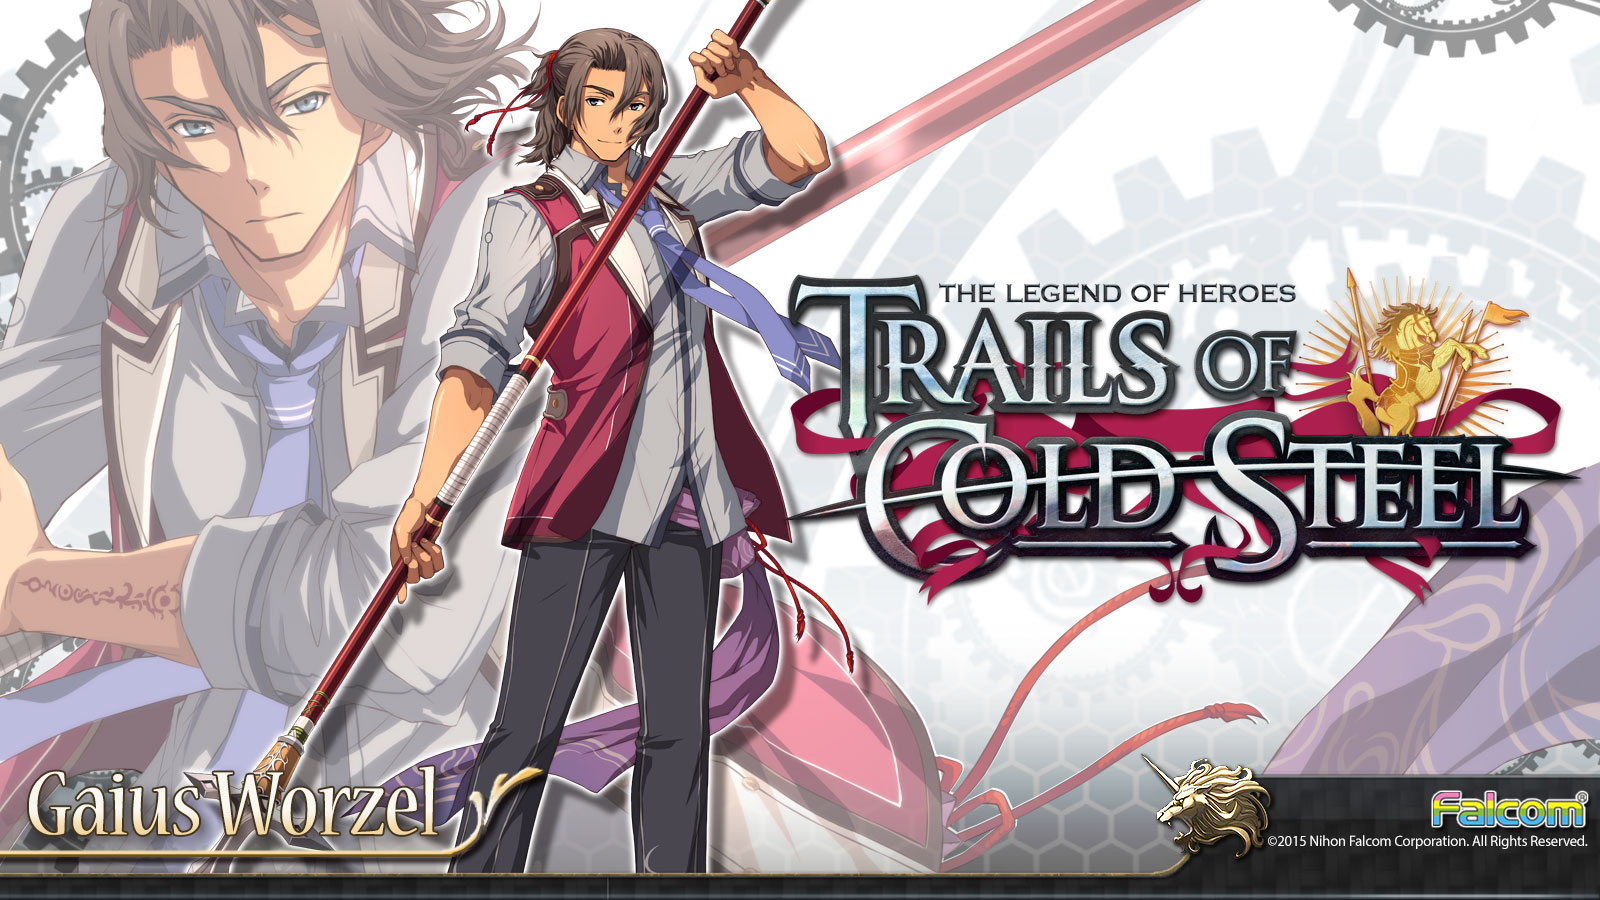 The Legend Of Heroes Trails Of Cold Steel Wallpaper 009 Gaius